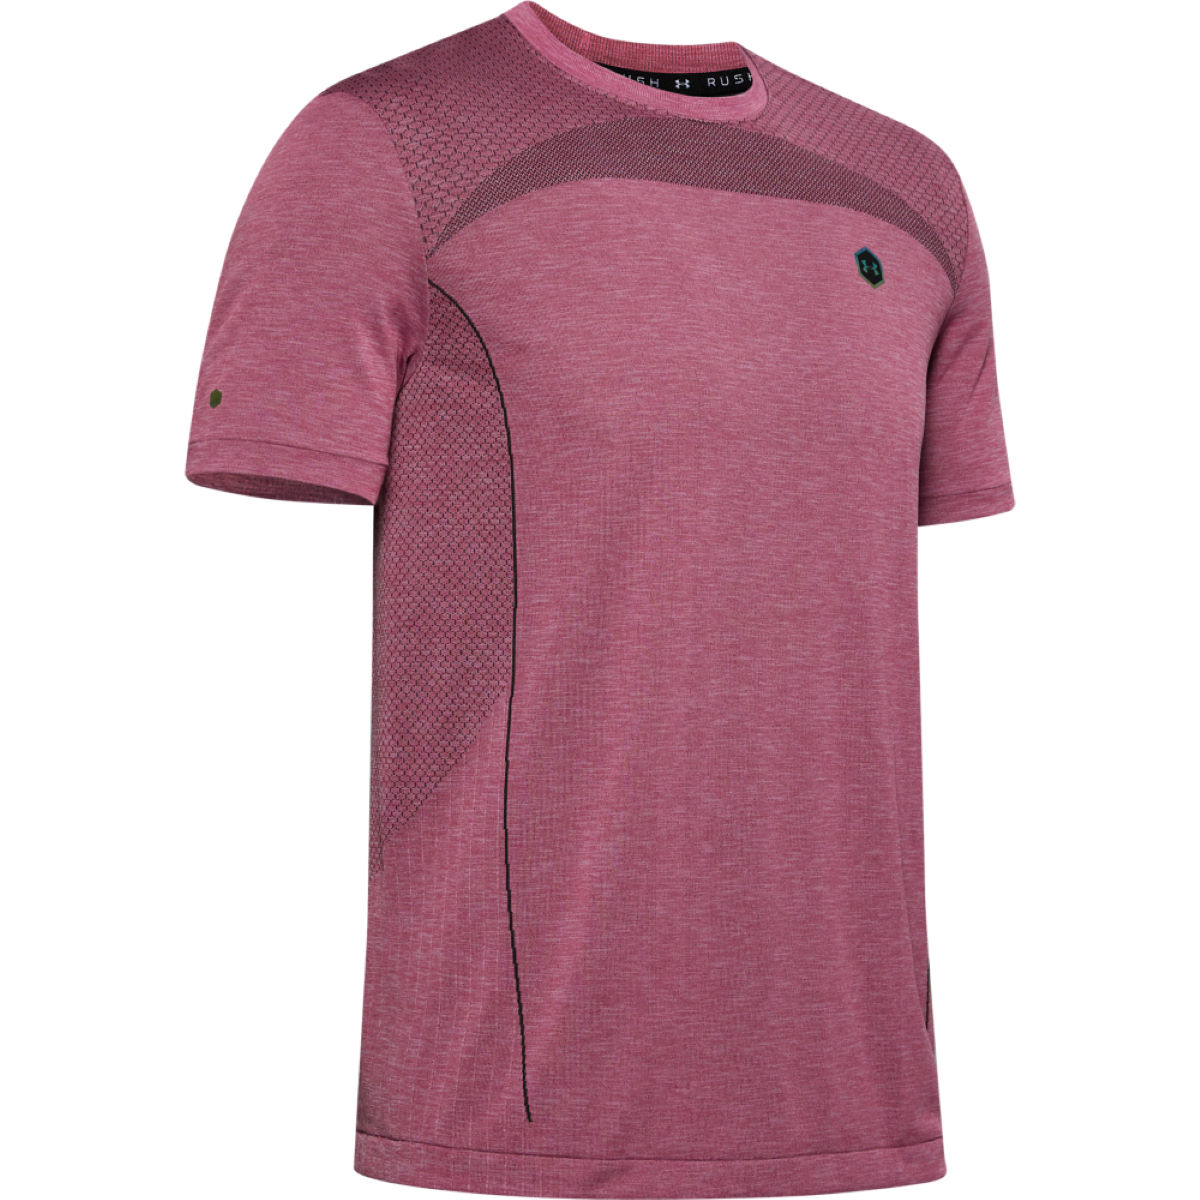 Under Armour Under Armour Rush Seamless Fitted T-Shirt   Short Sleeve Running Tops